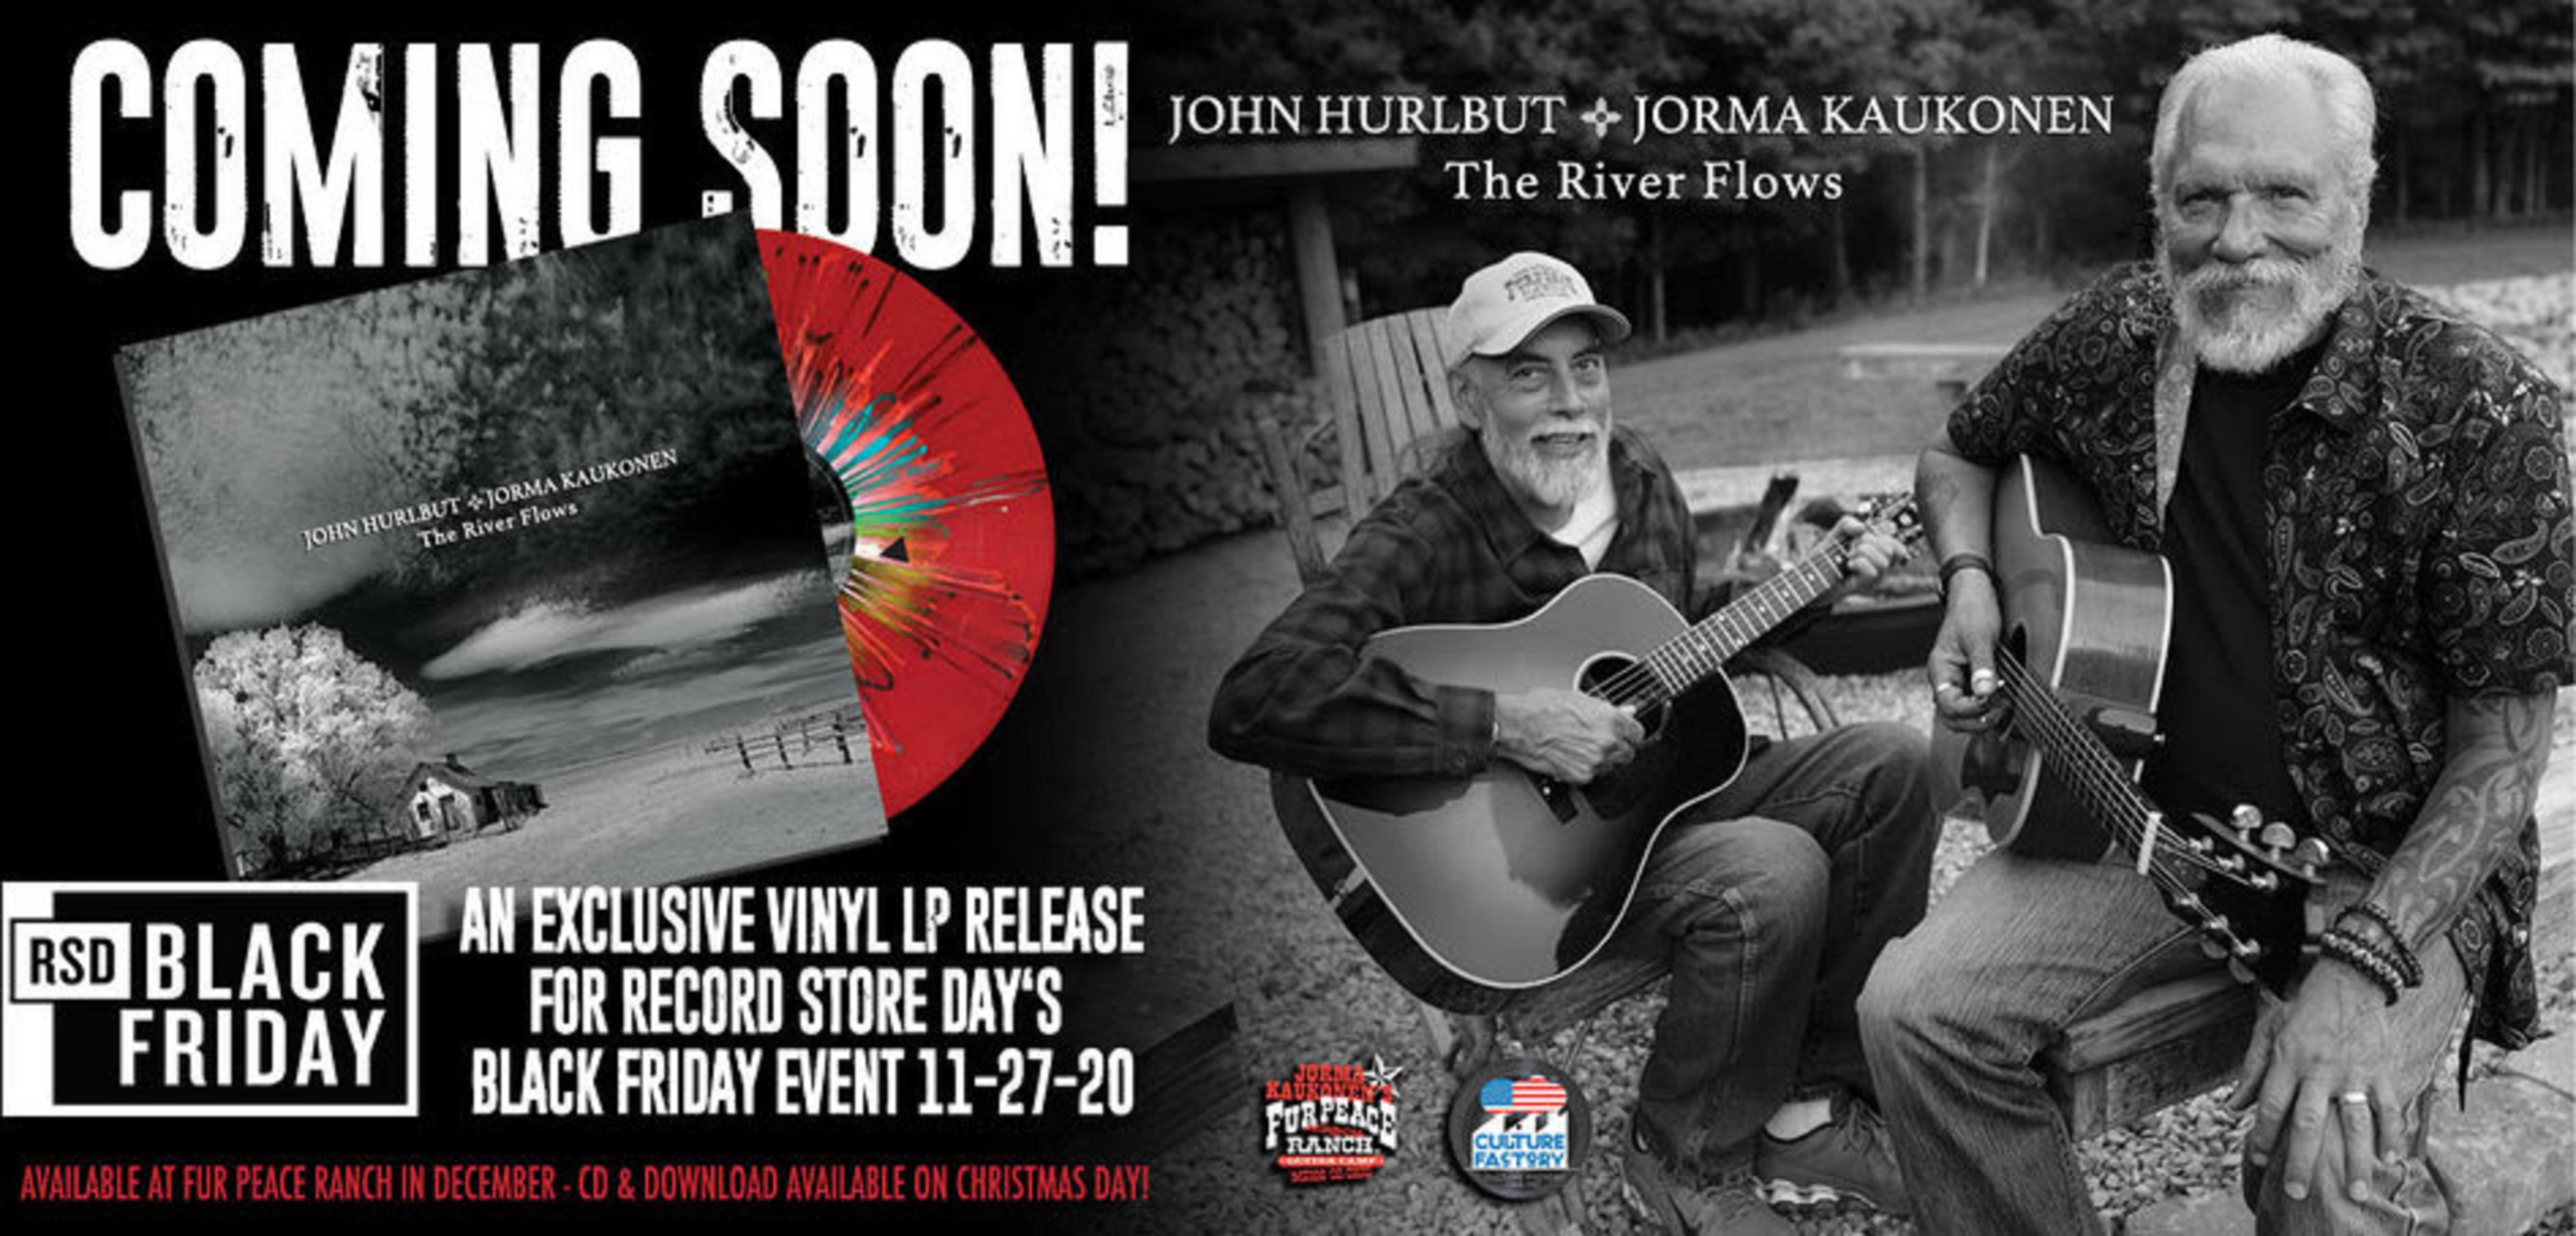 Jorma Kaukonen & John Hurlbut release The River Flows at RSD Black Friday Event